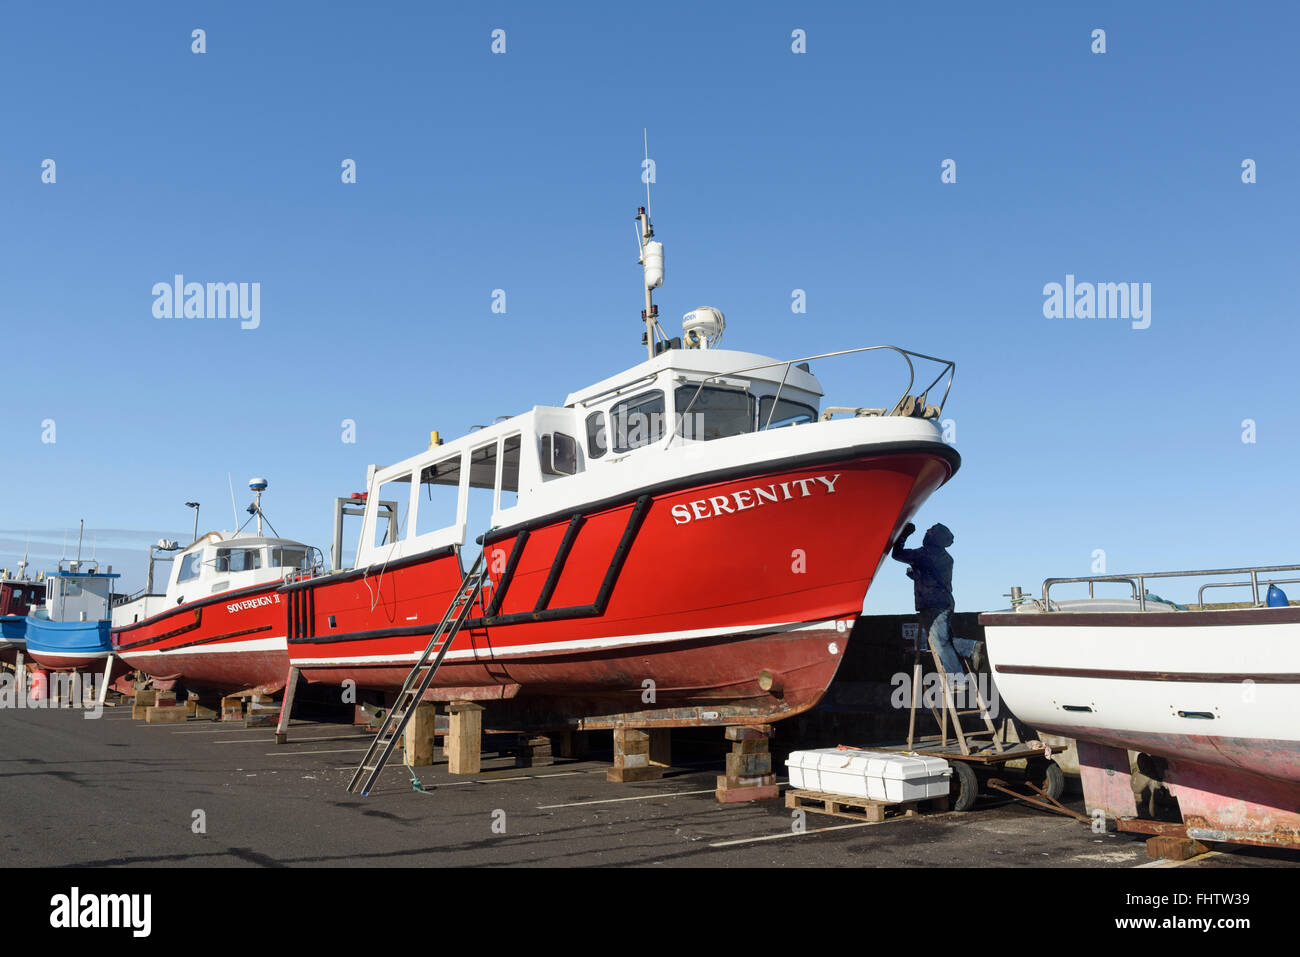 Seahouses Harbour in Northumberland - Stock Image